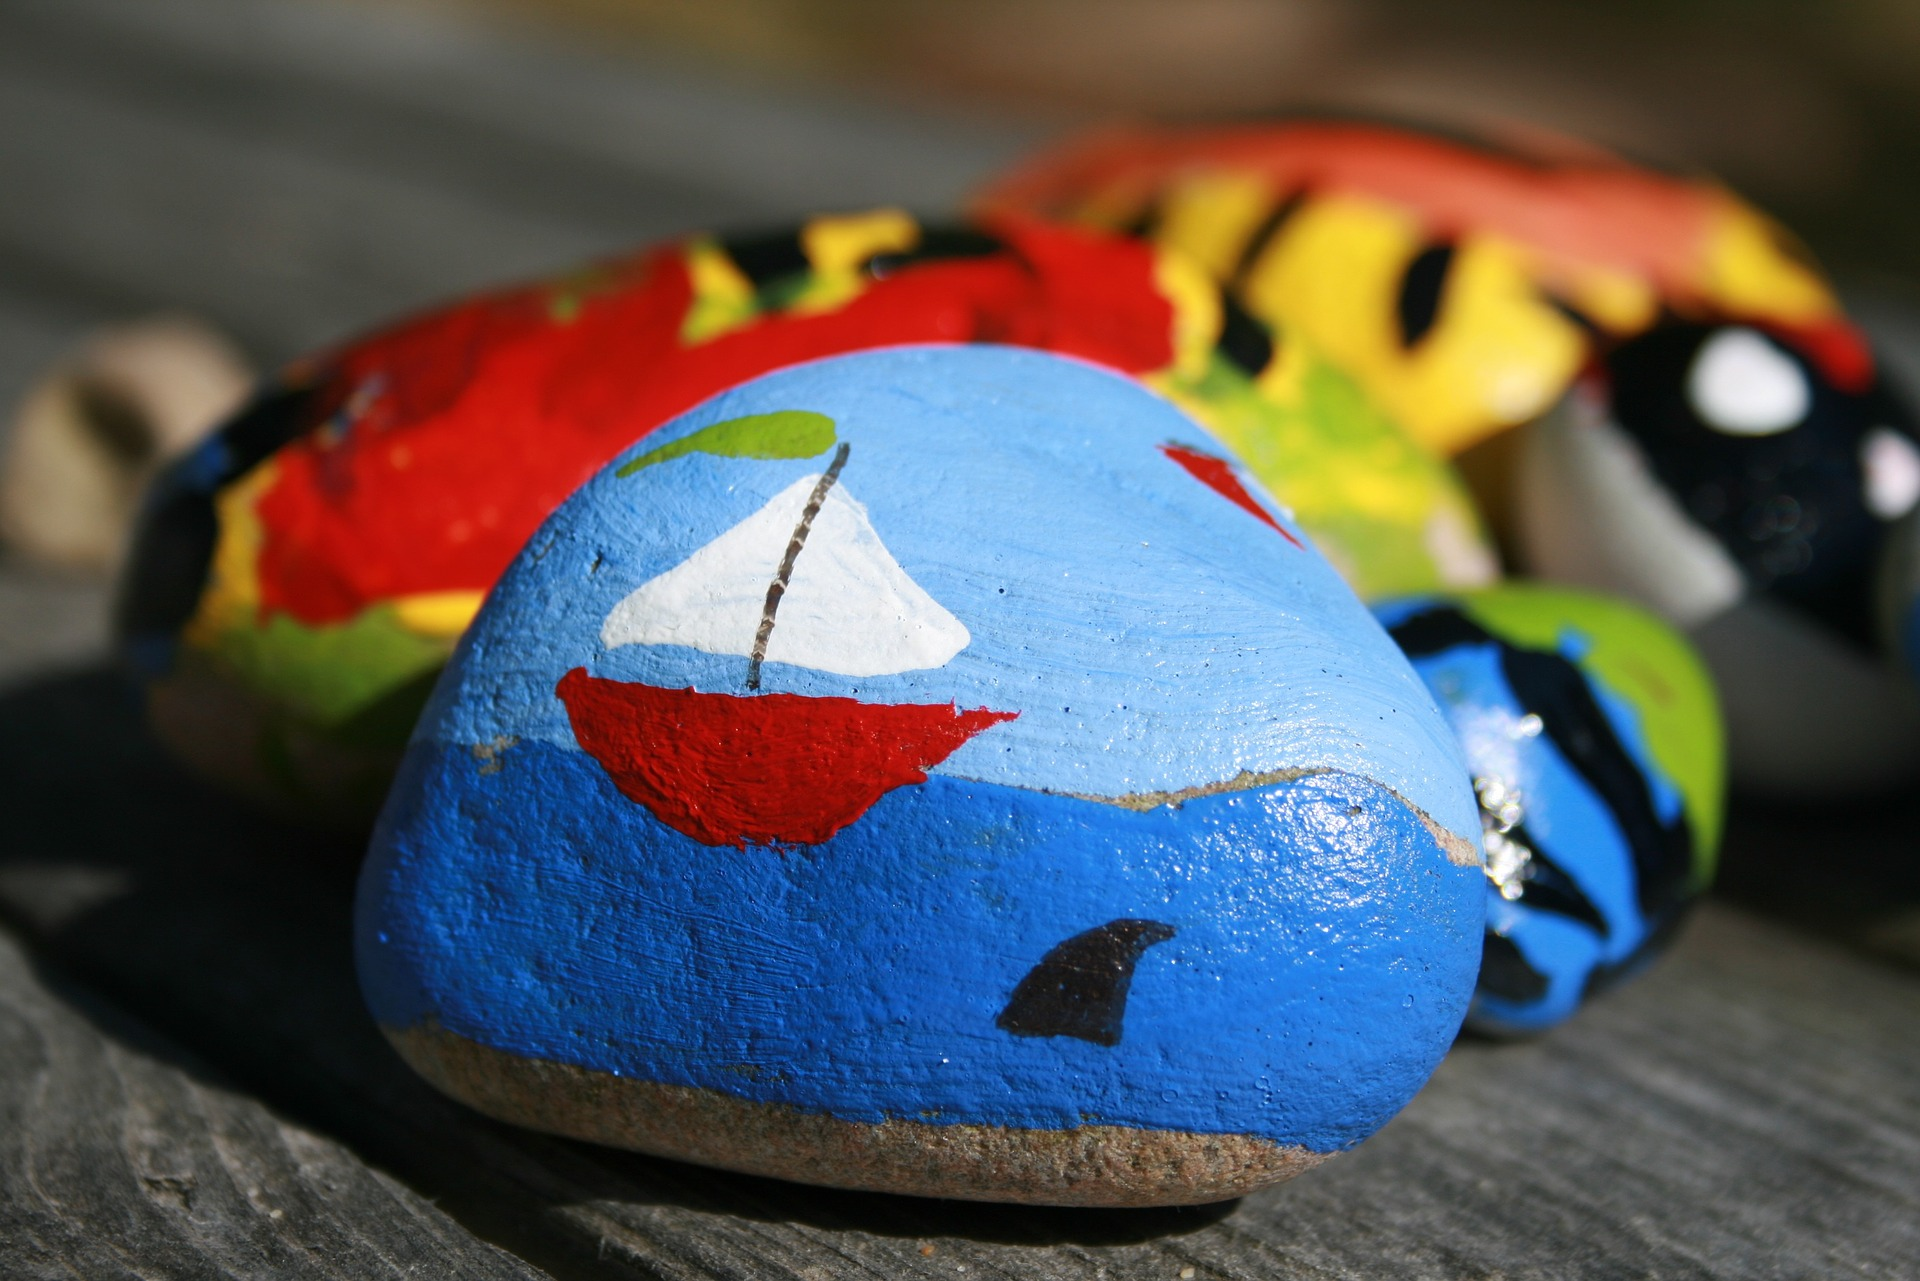 Rock painting as a senior activity.